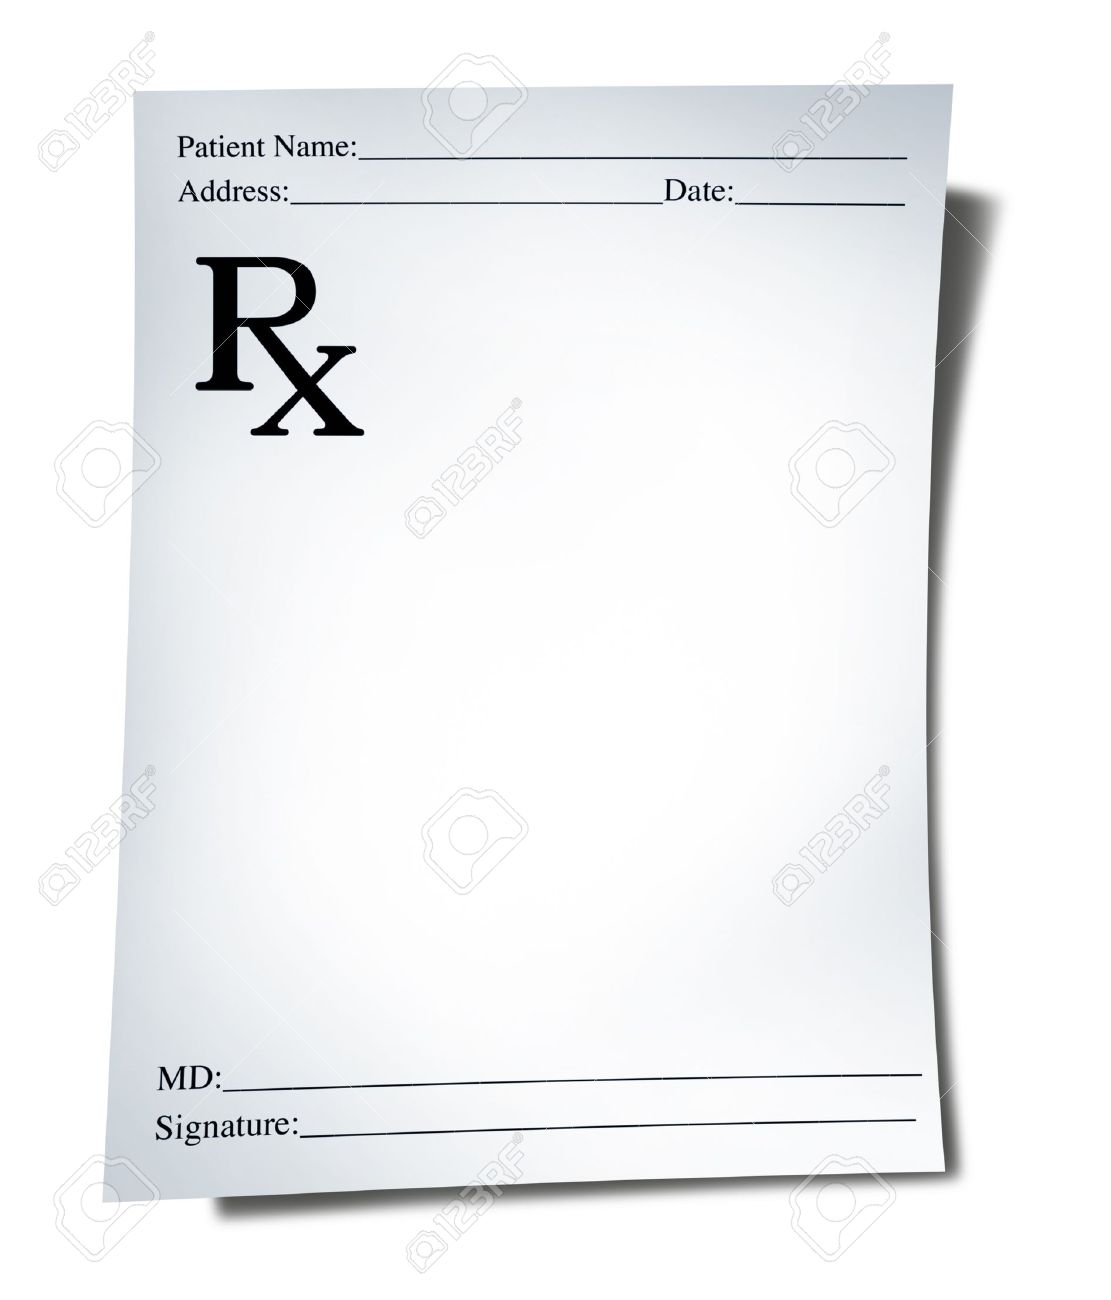 Blank Prescription Template - Corpedo.com